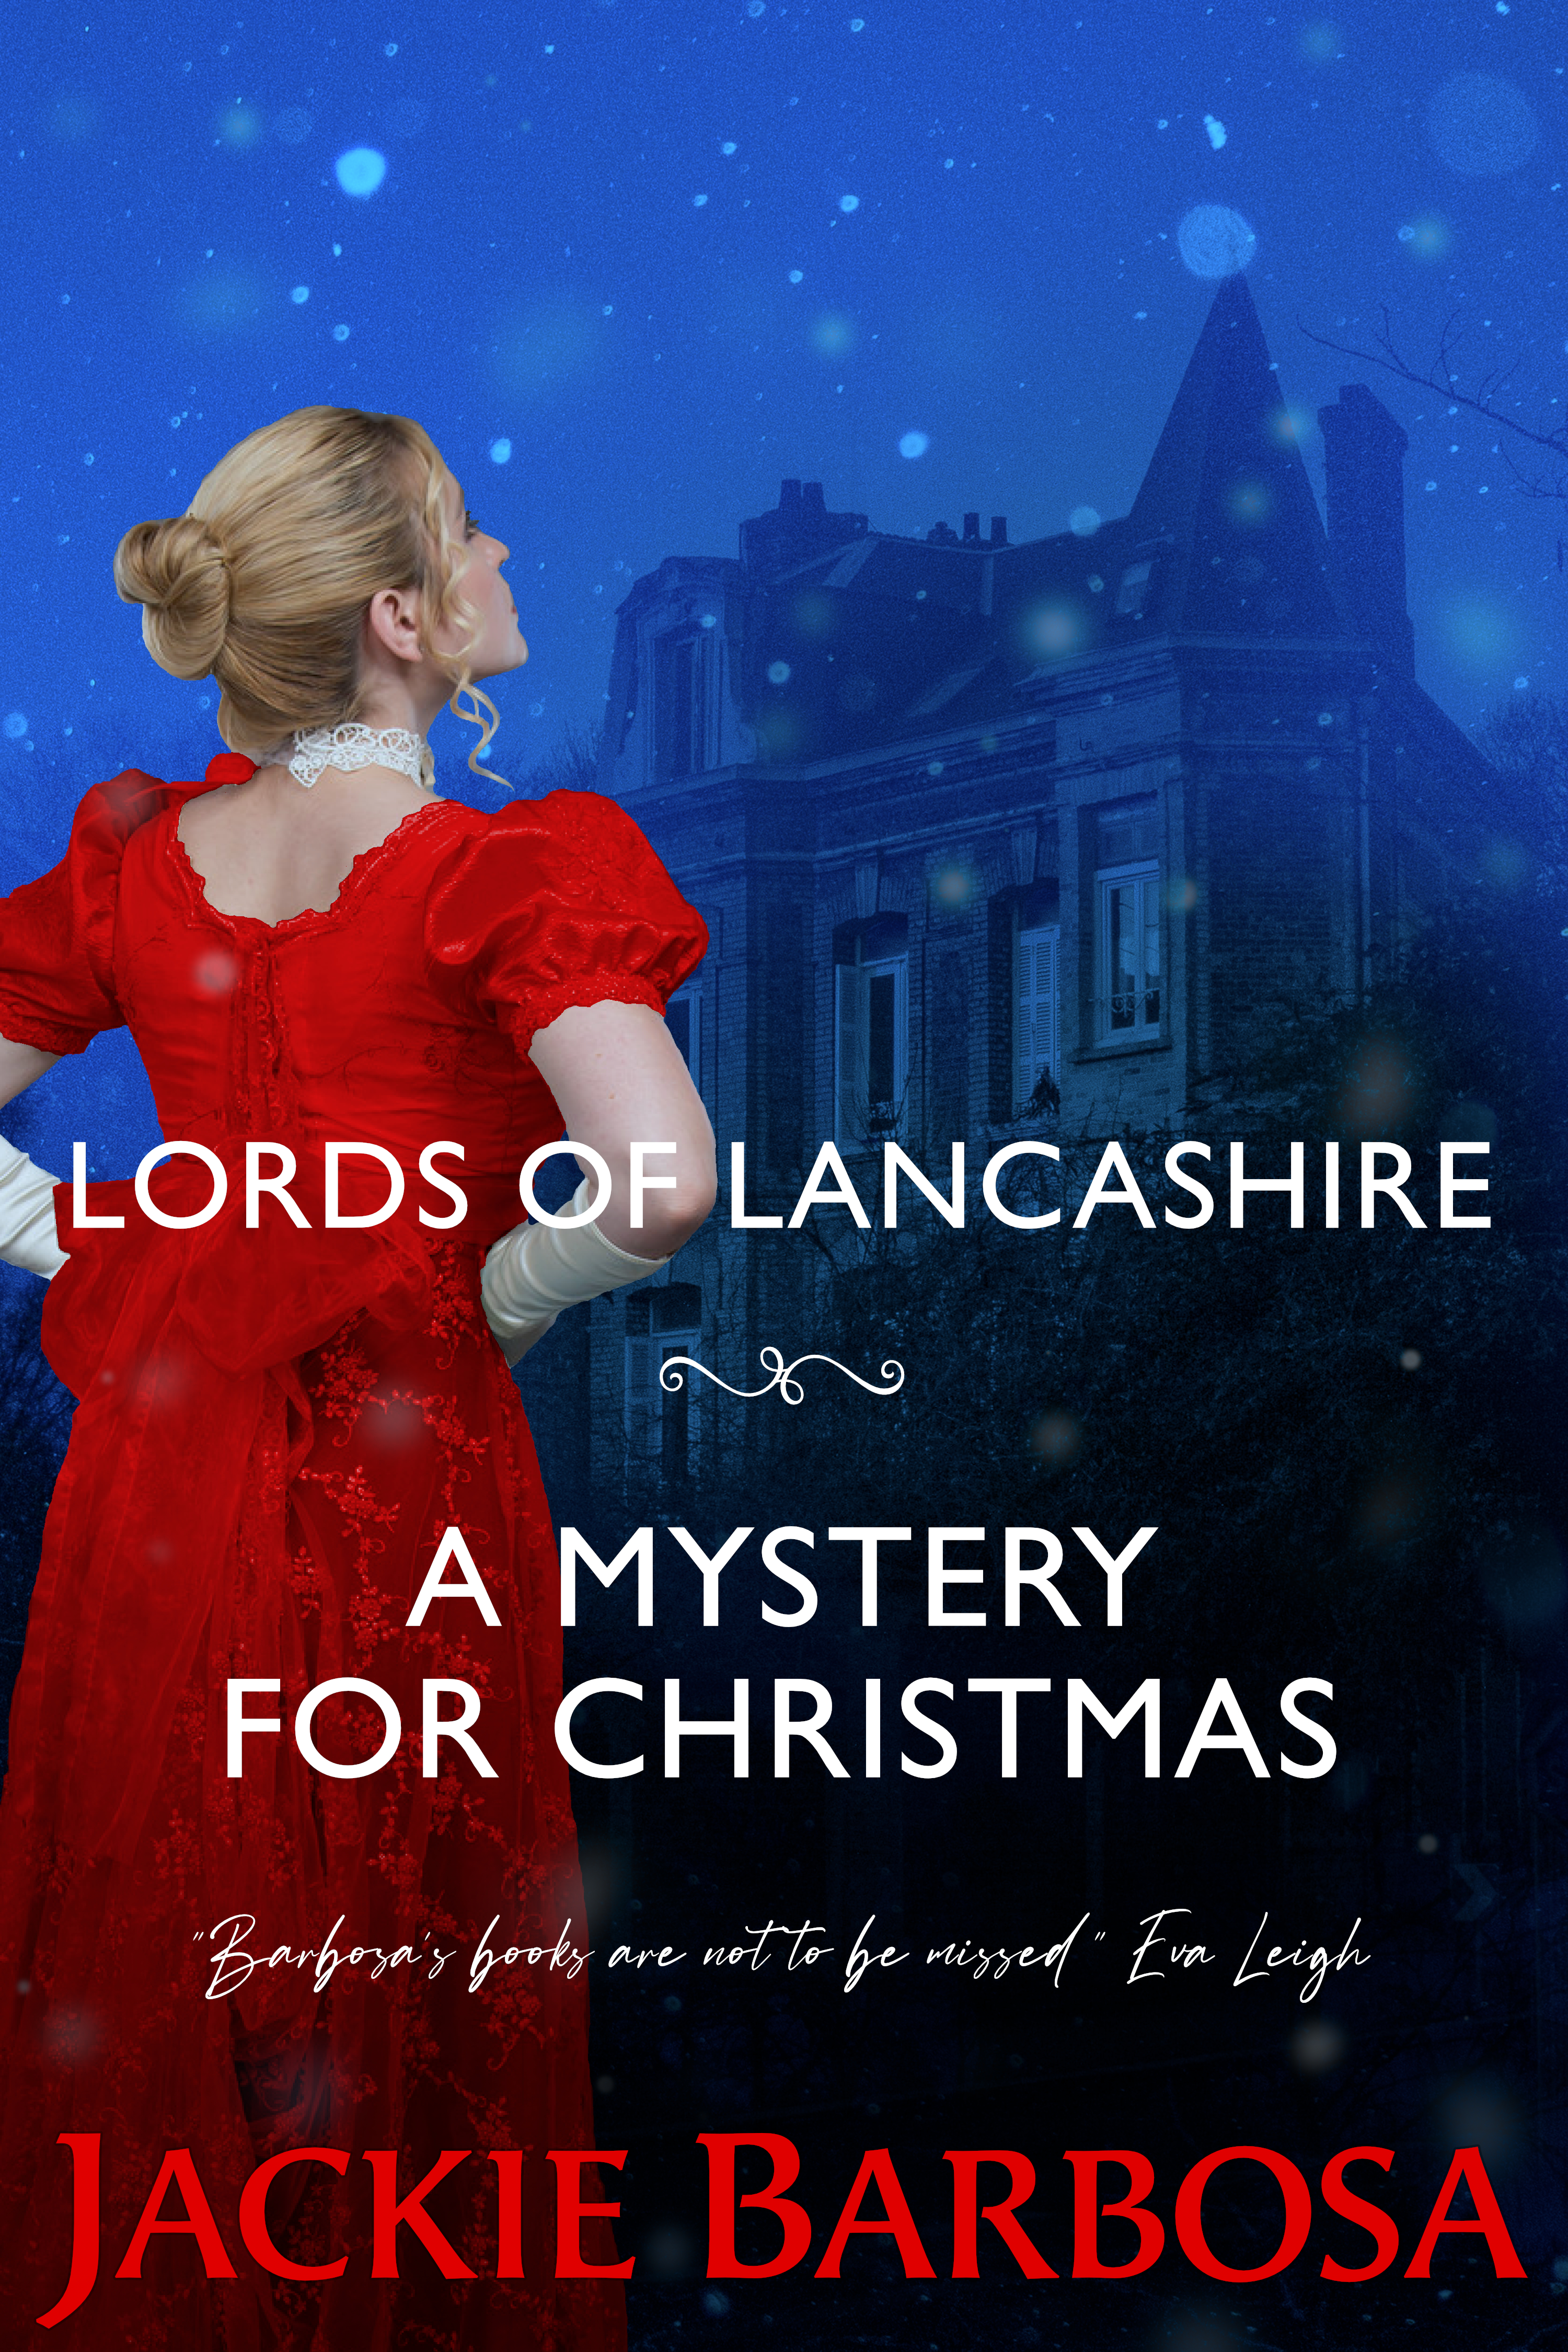 A Mystery for Christmas by Jackie Barbosa